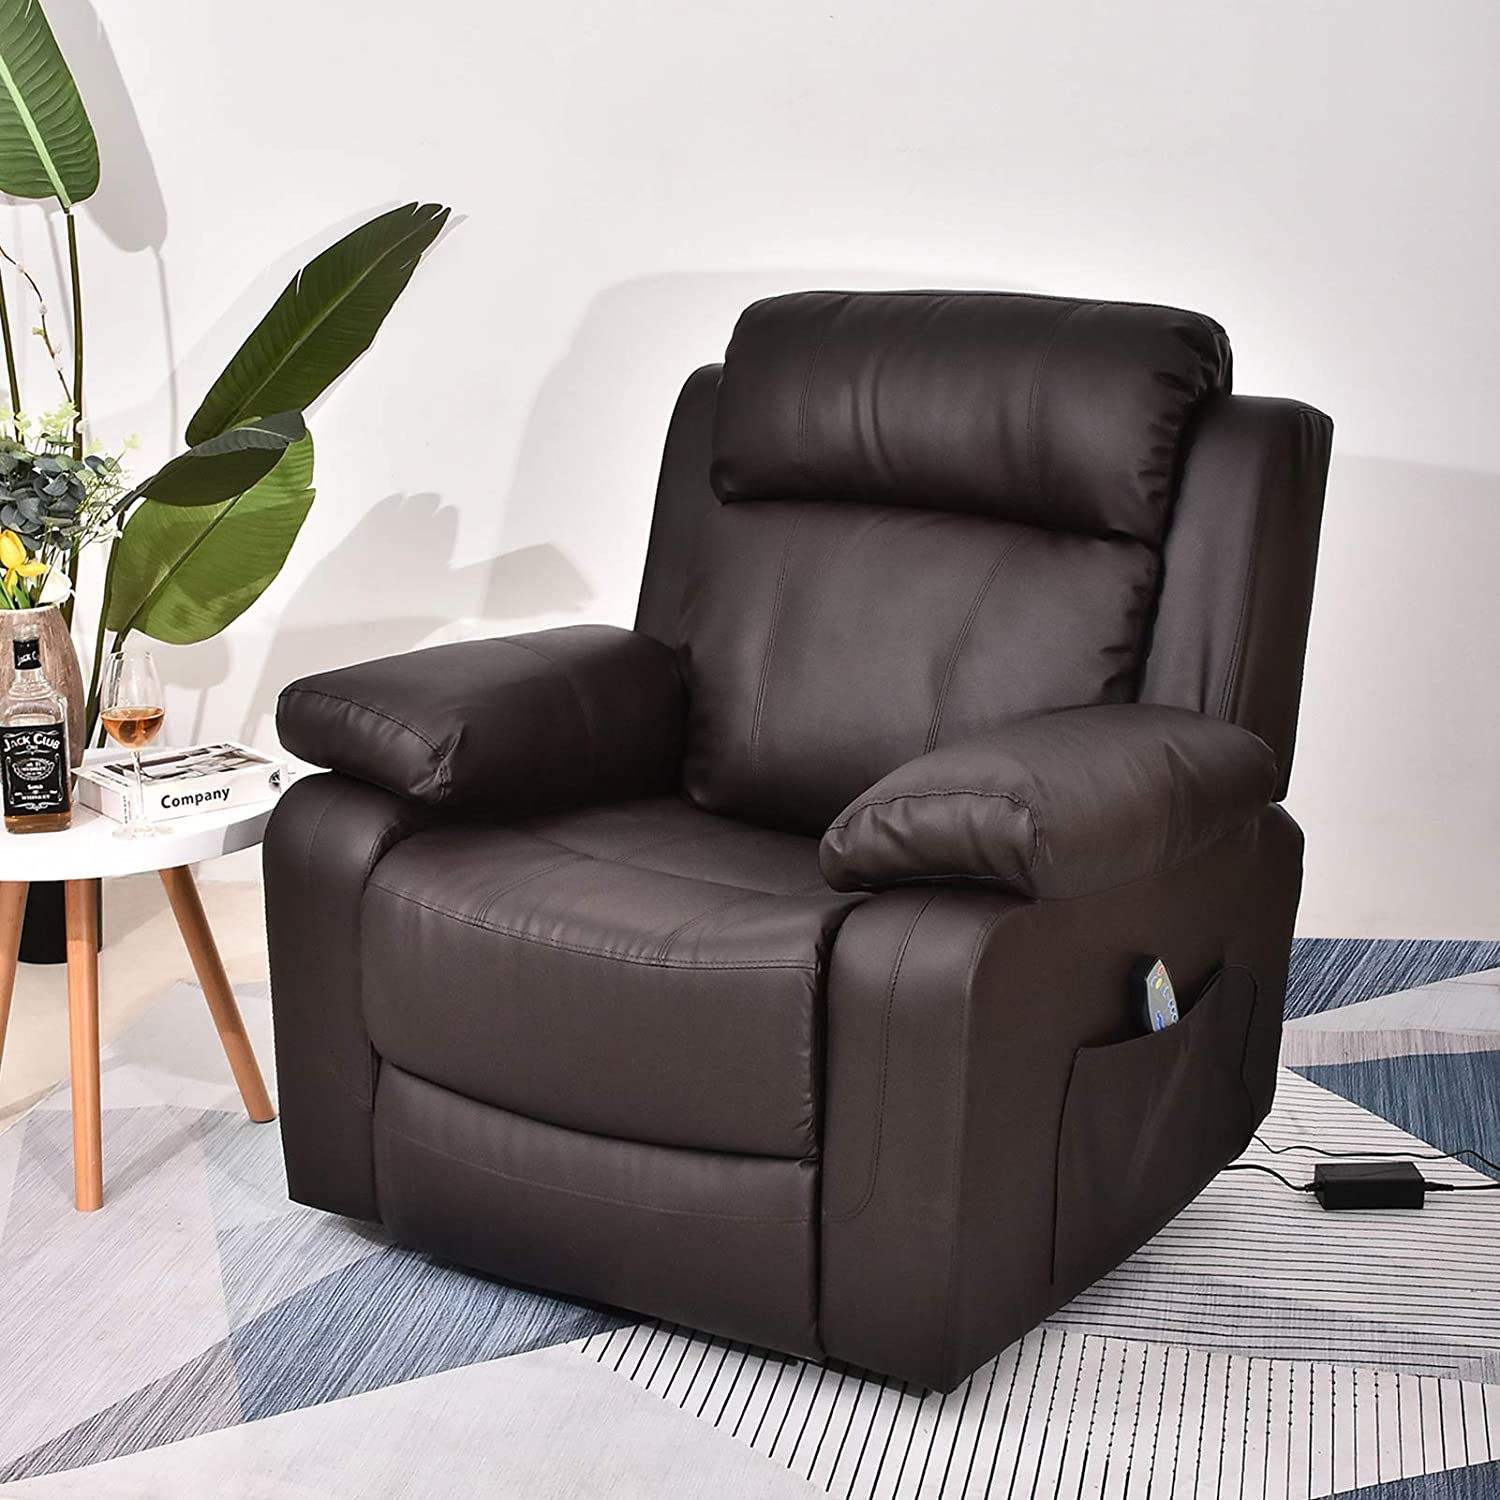 Recliner Chair Sleeper Reading Chairs for Bedroom PU Leather Recliner  Chairs for Living Room Theater Seating Power Recliner with Heat and Massage